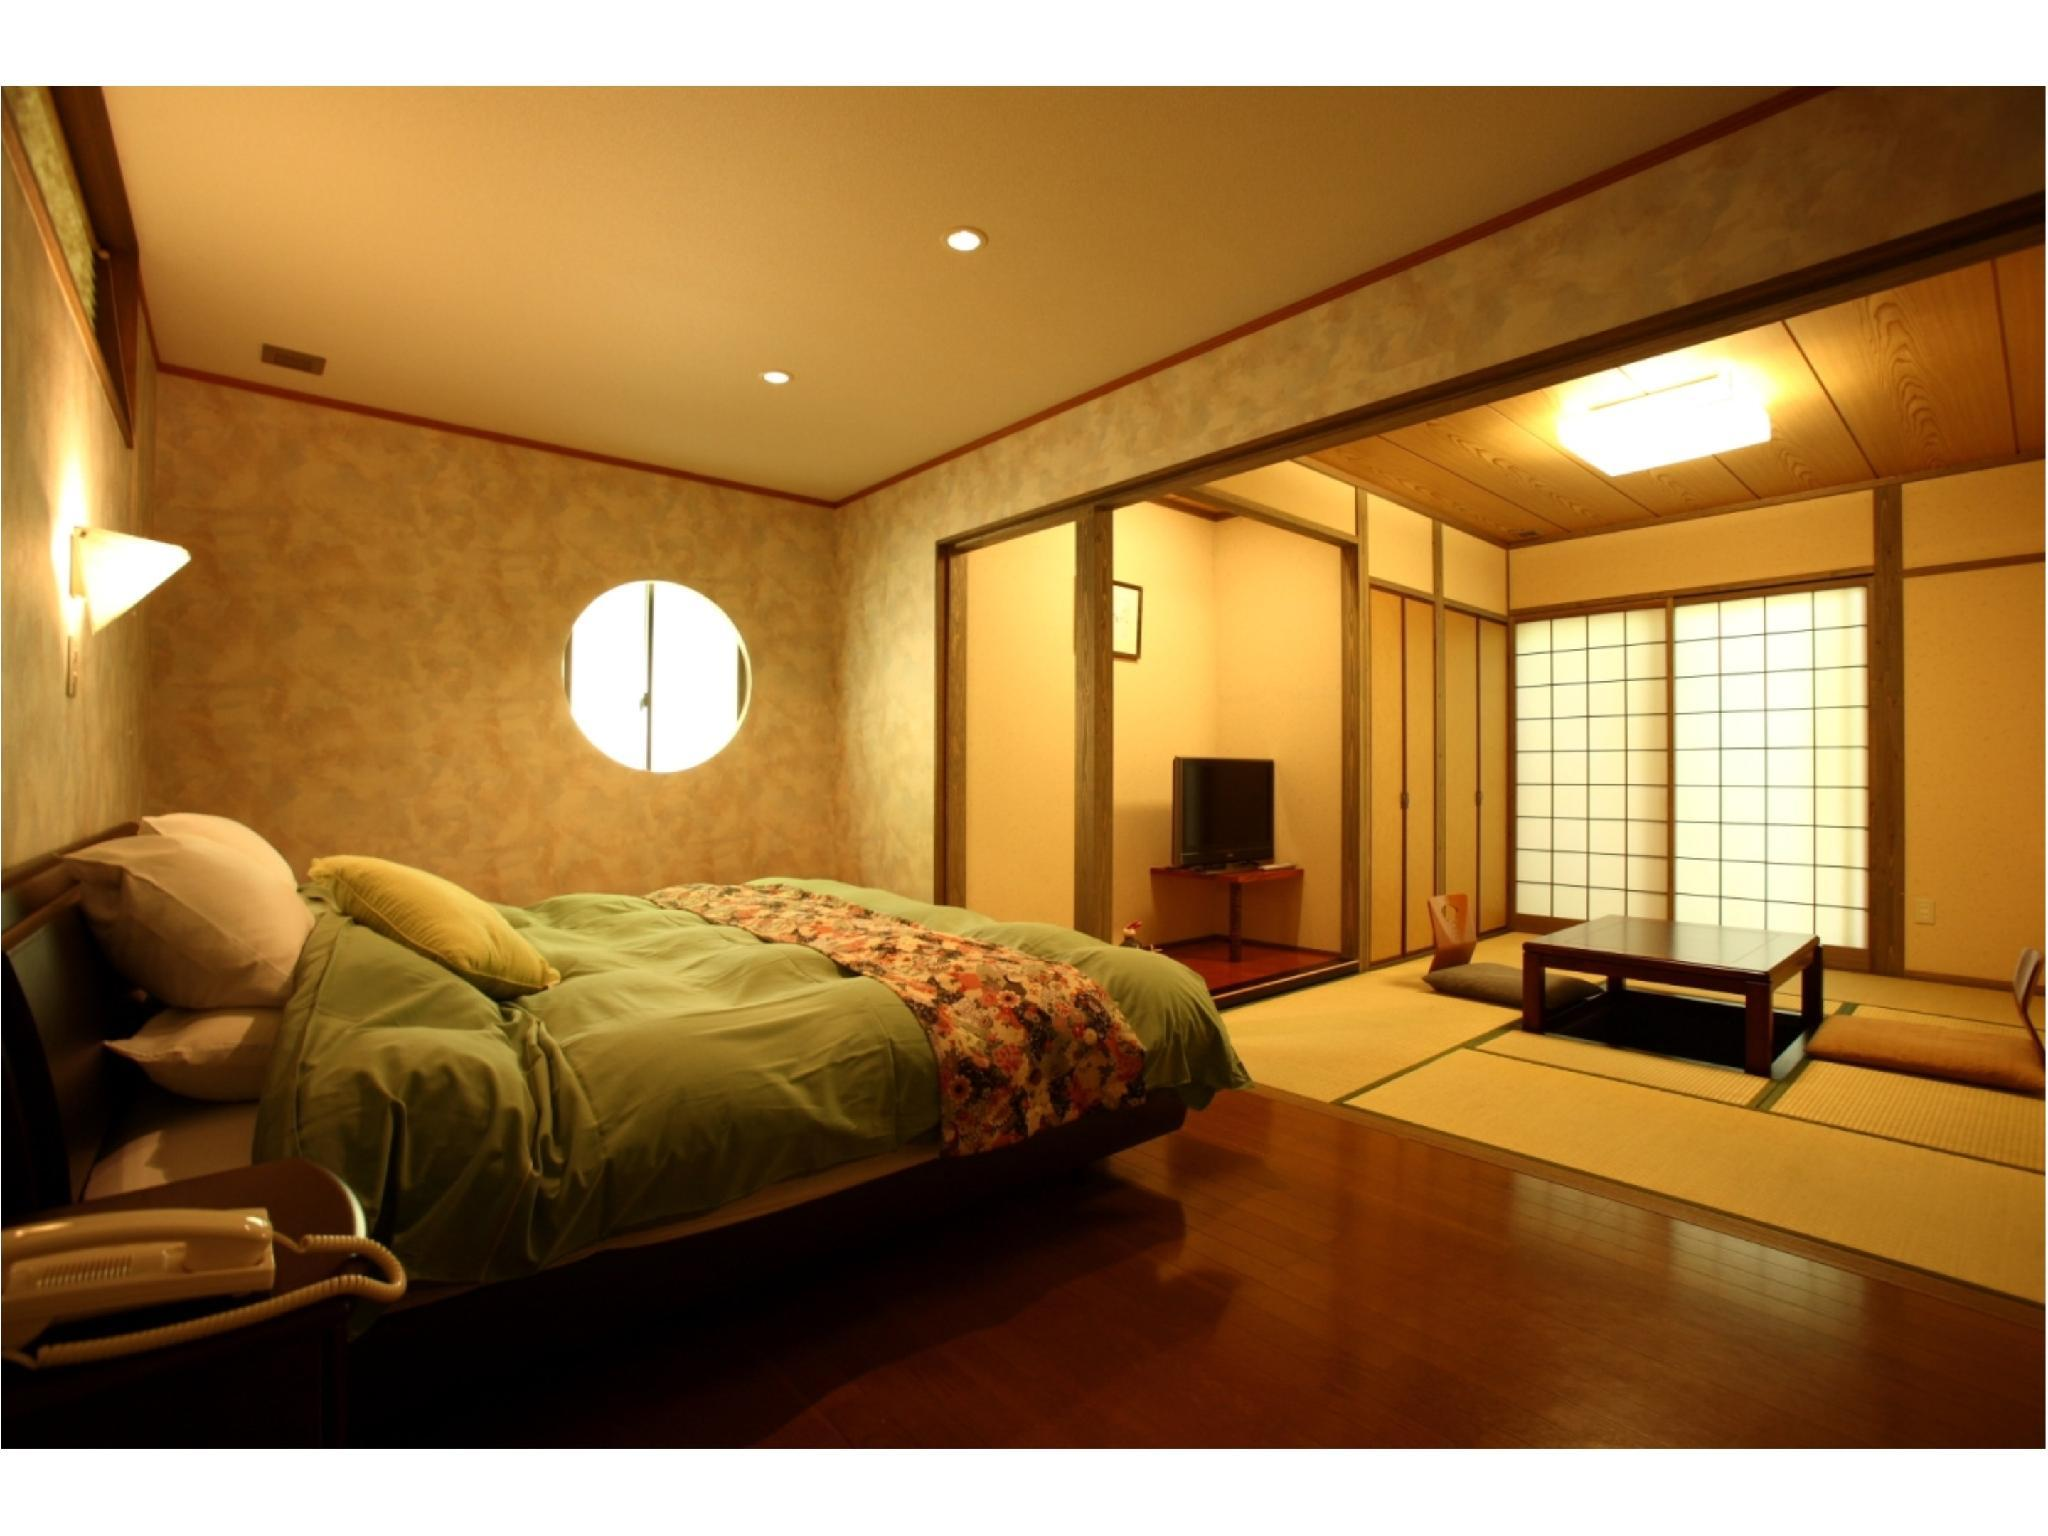 独立房(和洋式房+露天风吕)※无游泳池 (Detached Japanese/Western-style Room with Open-air Bath *No pool)